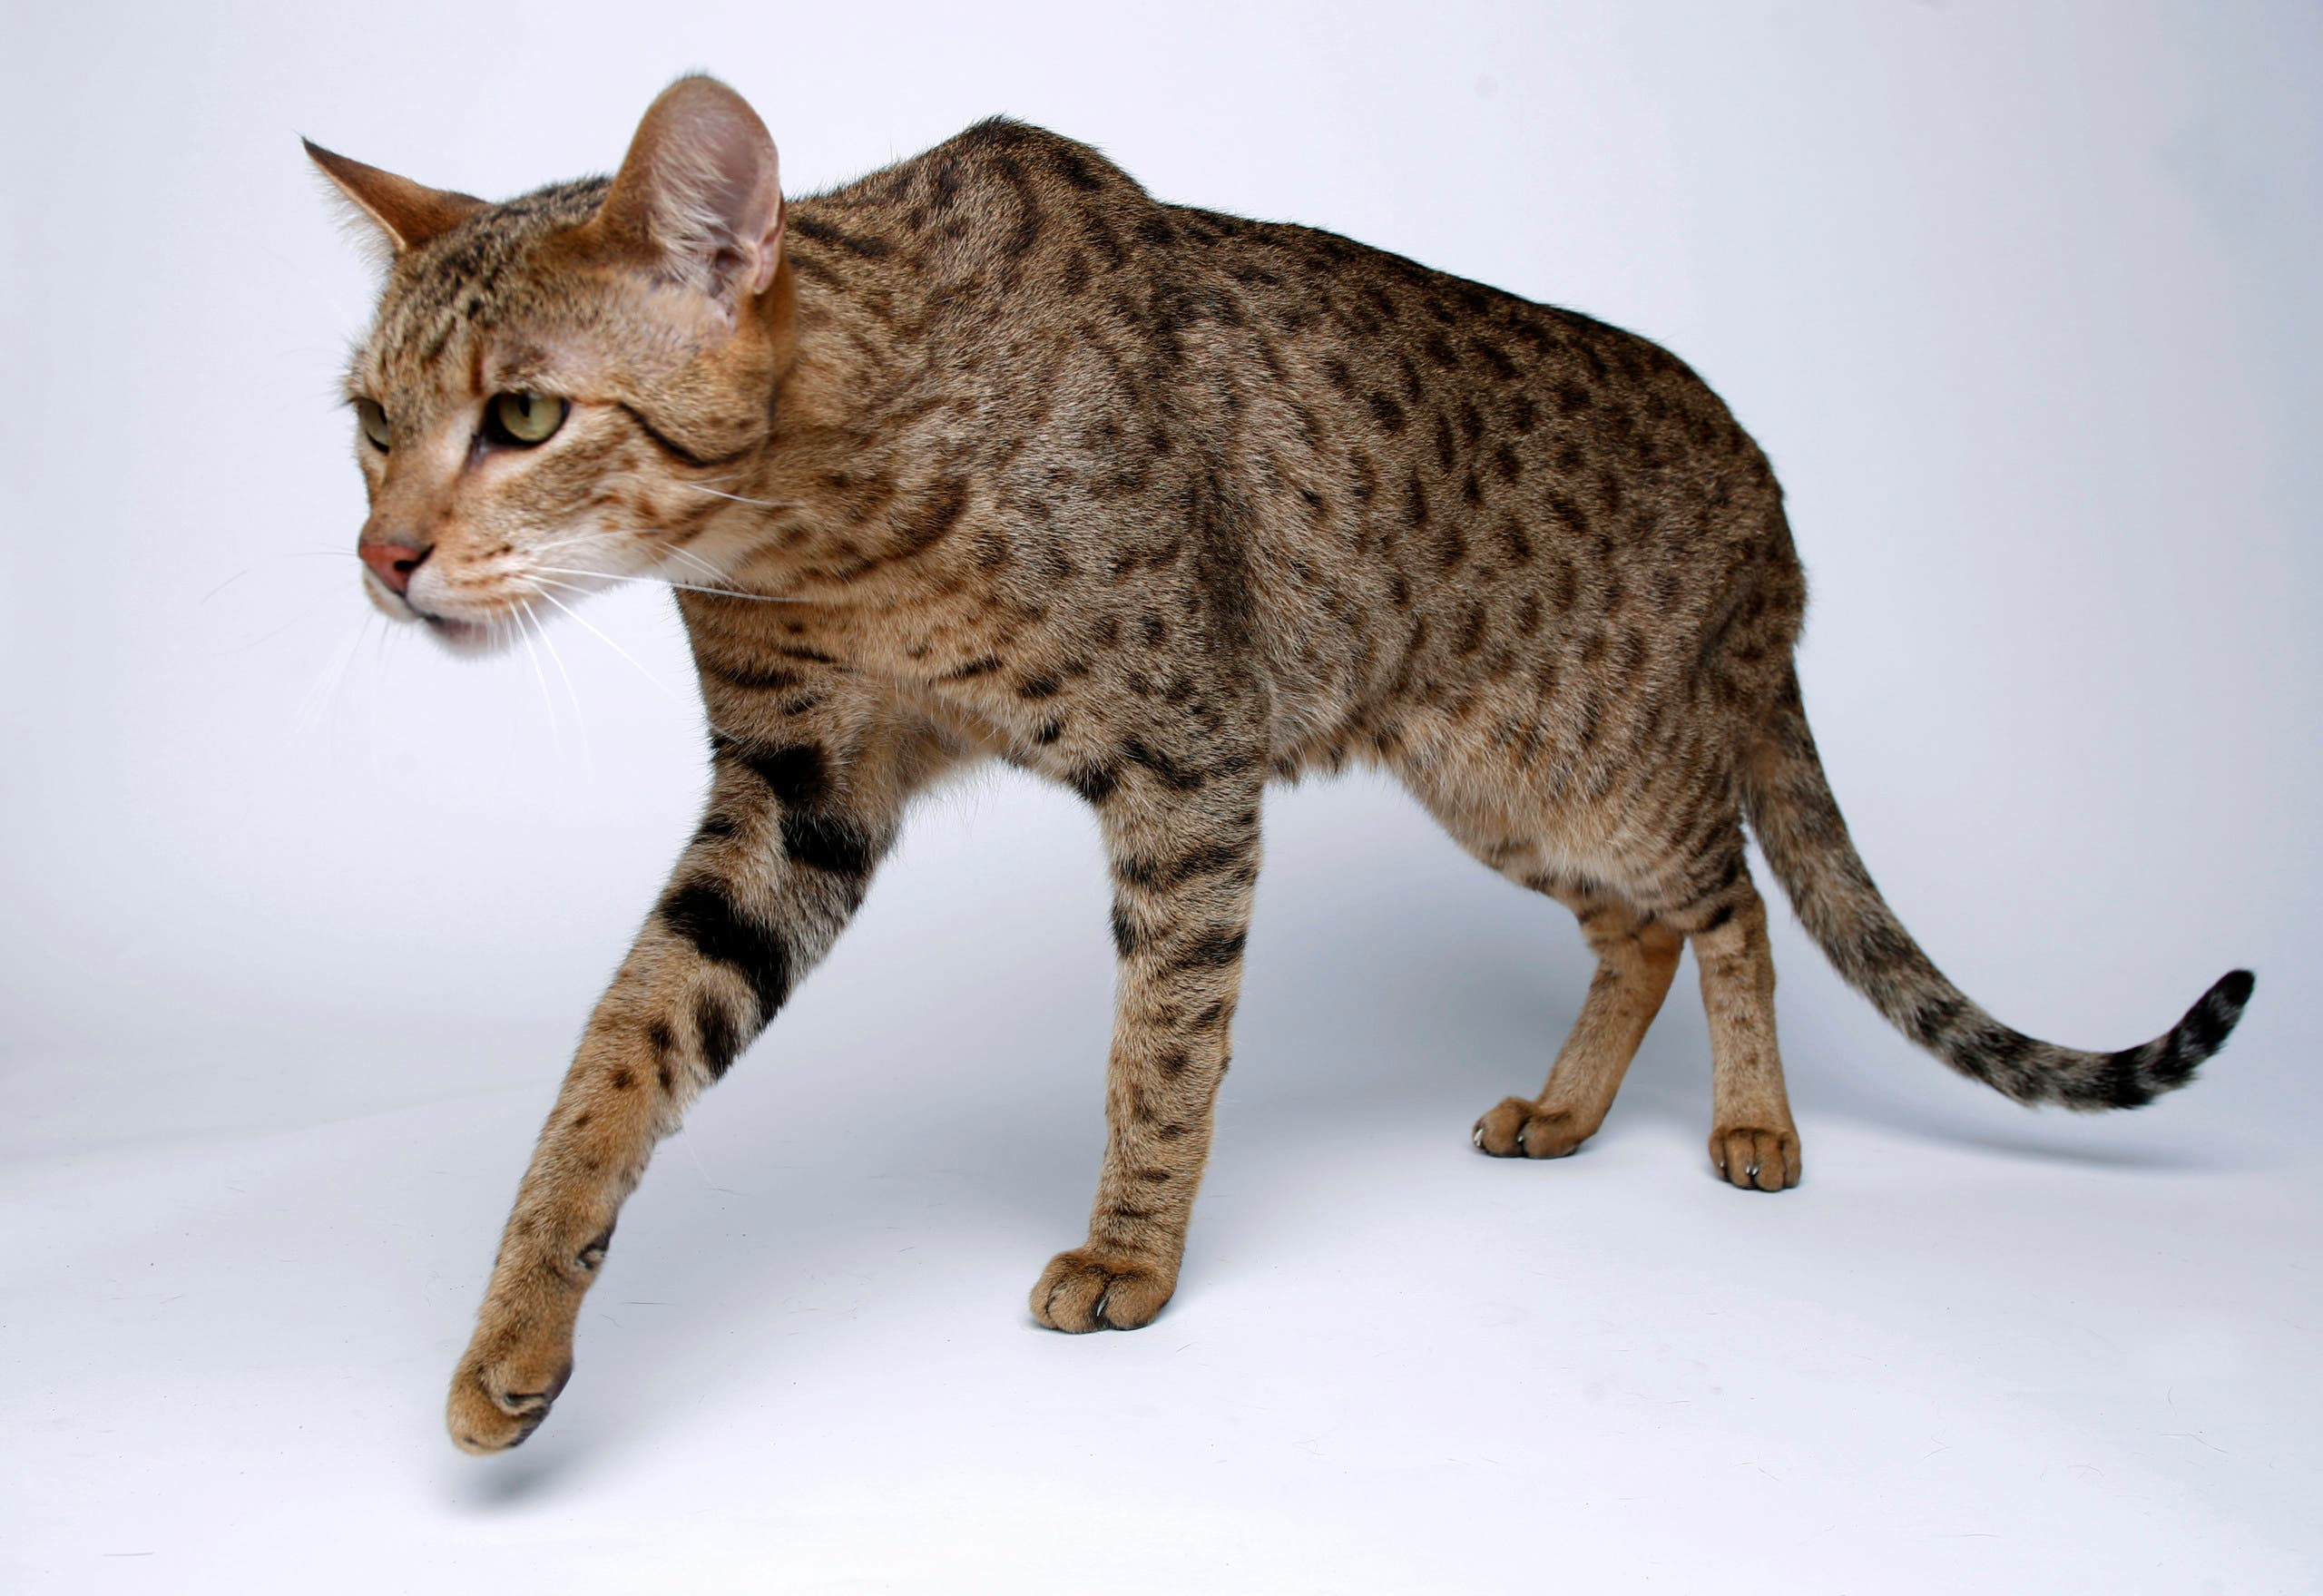 The Ashera is a mix between an African Serval, an Asian Leopard and a domestic cat that can weigh up to 30 pounds (14 kg). (Reuters)